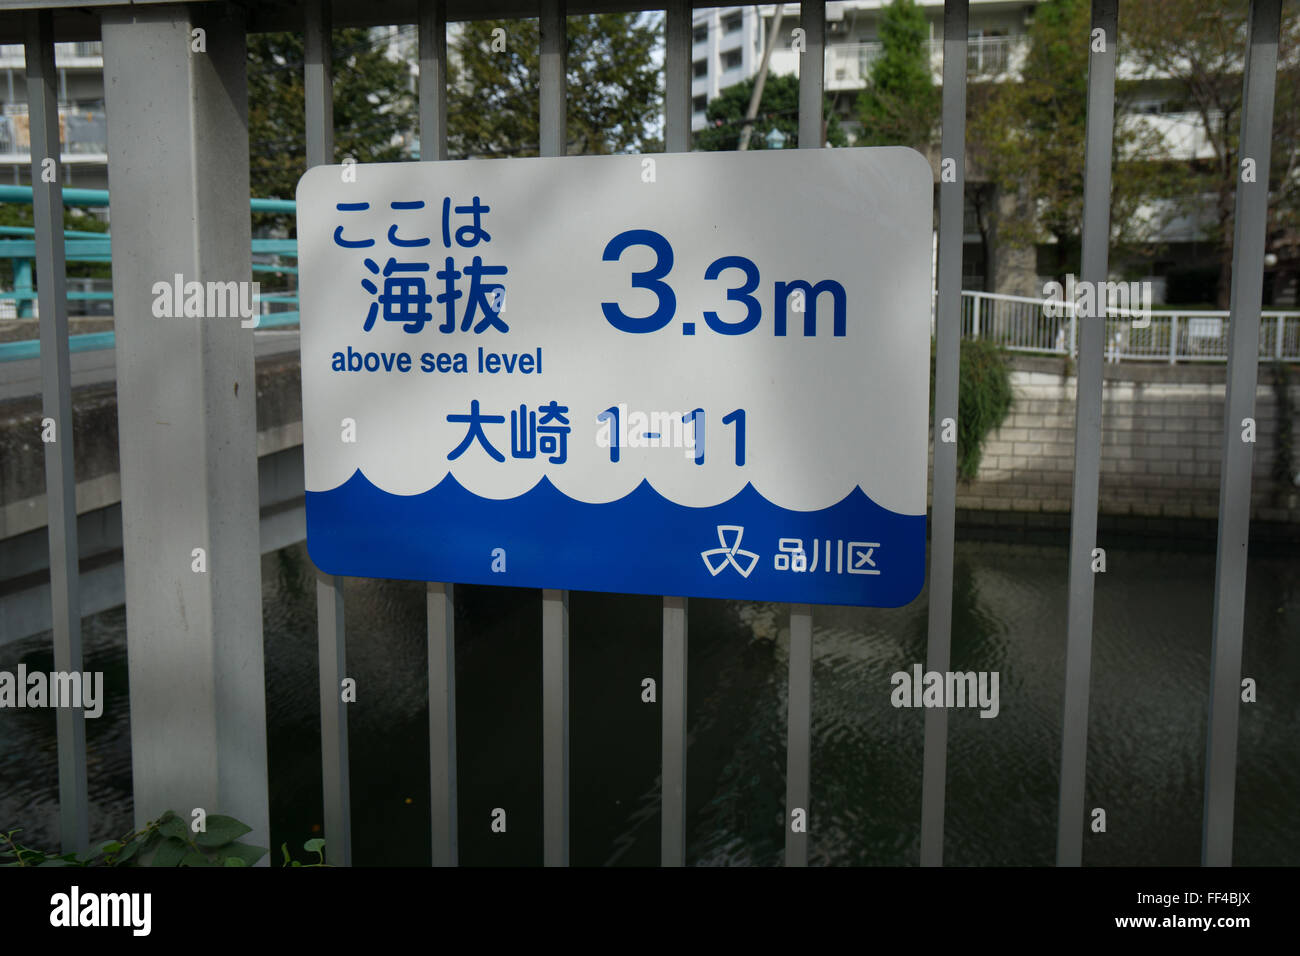 Tsunami Warning Sign With Current Elevation Stock Photo Royalty - Current elevation